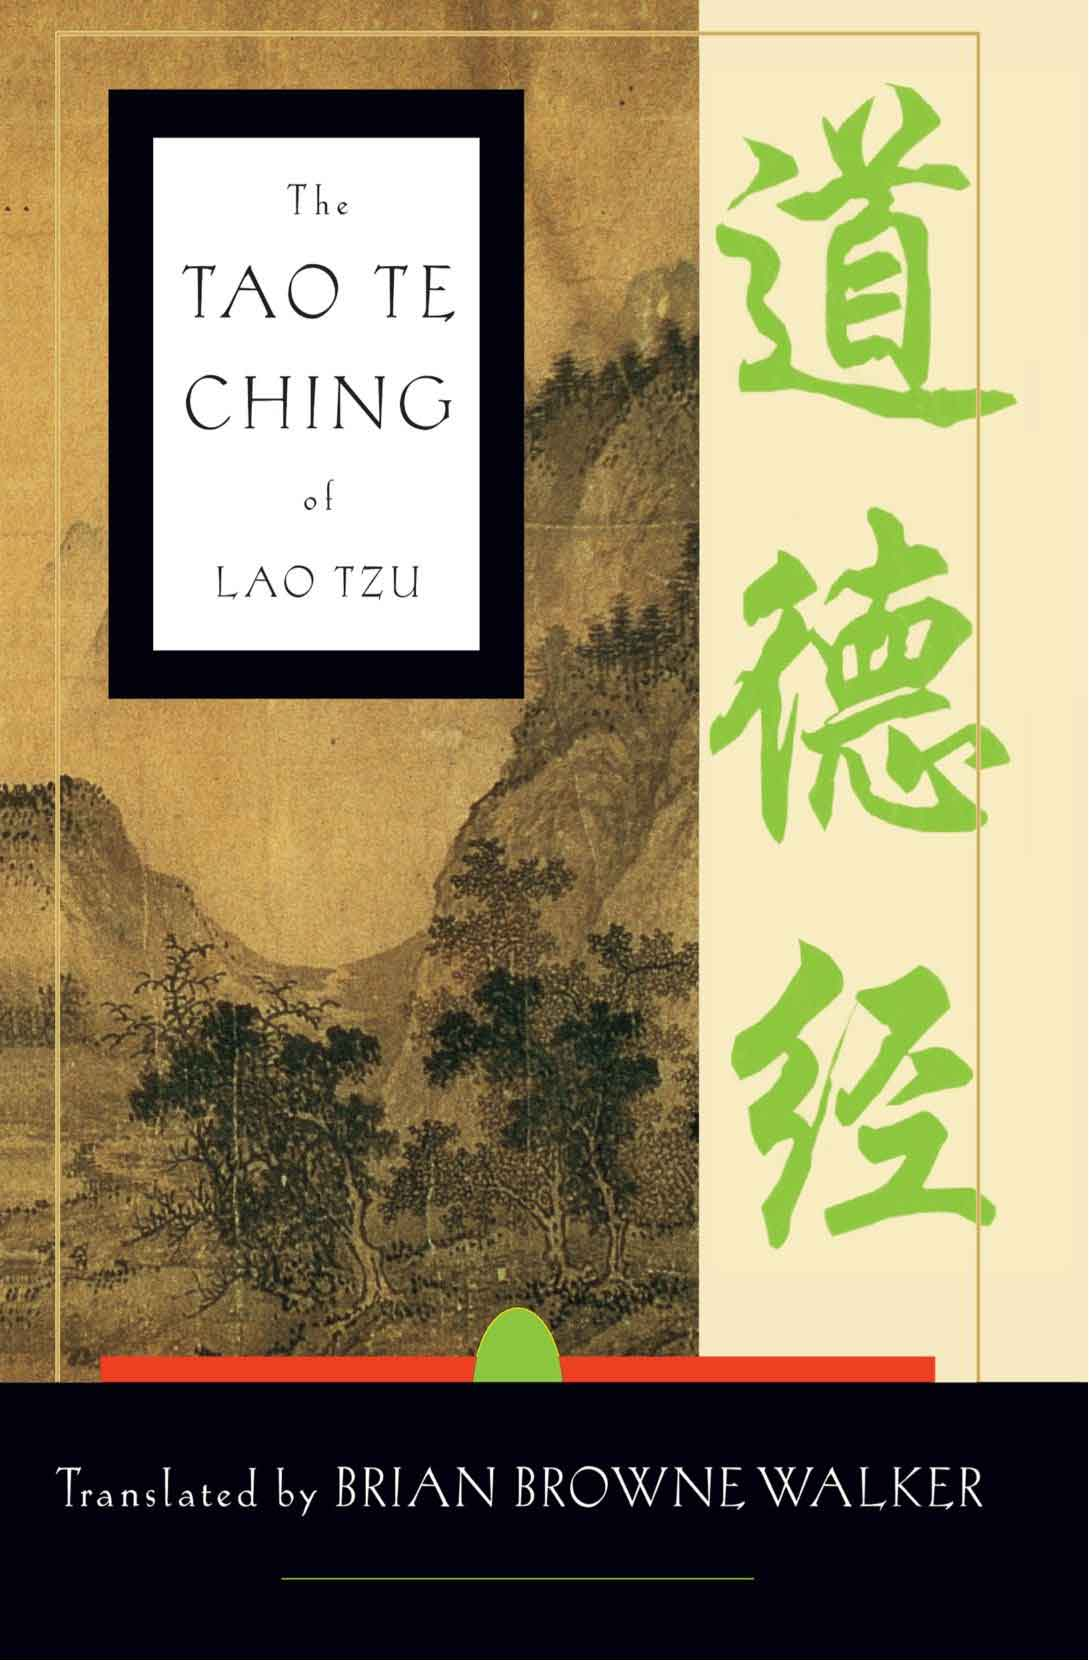 tao and lao tzu discussion questions Discussion questions quotations key terms lao tzu is recognized as the founder of taoism and author of tao te ching.